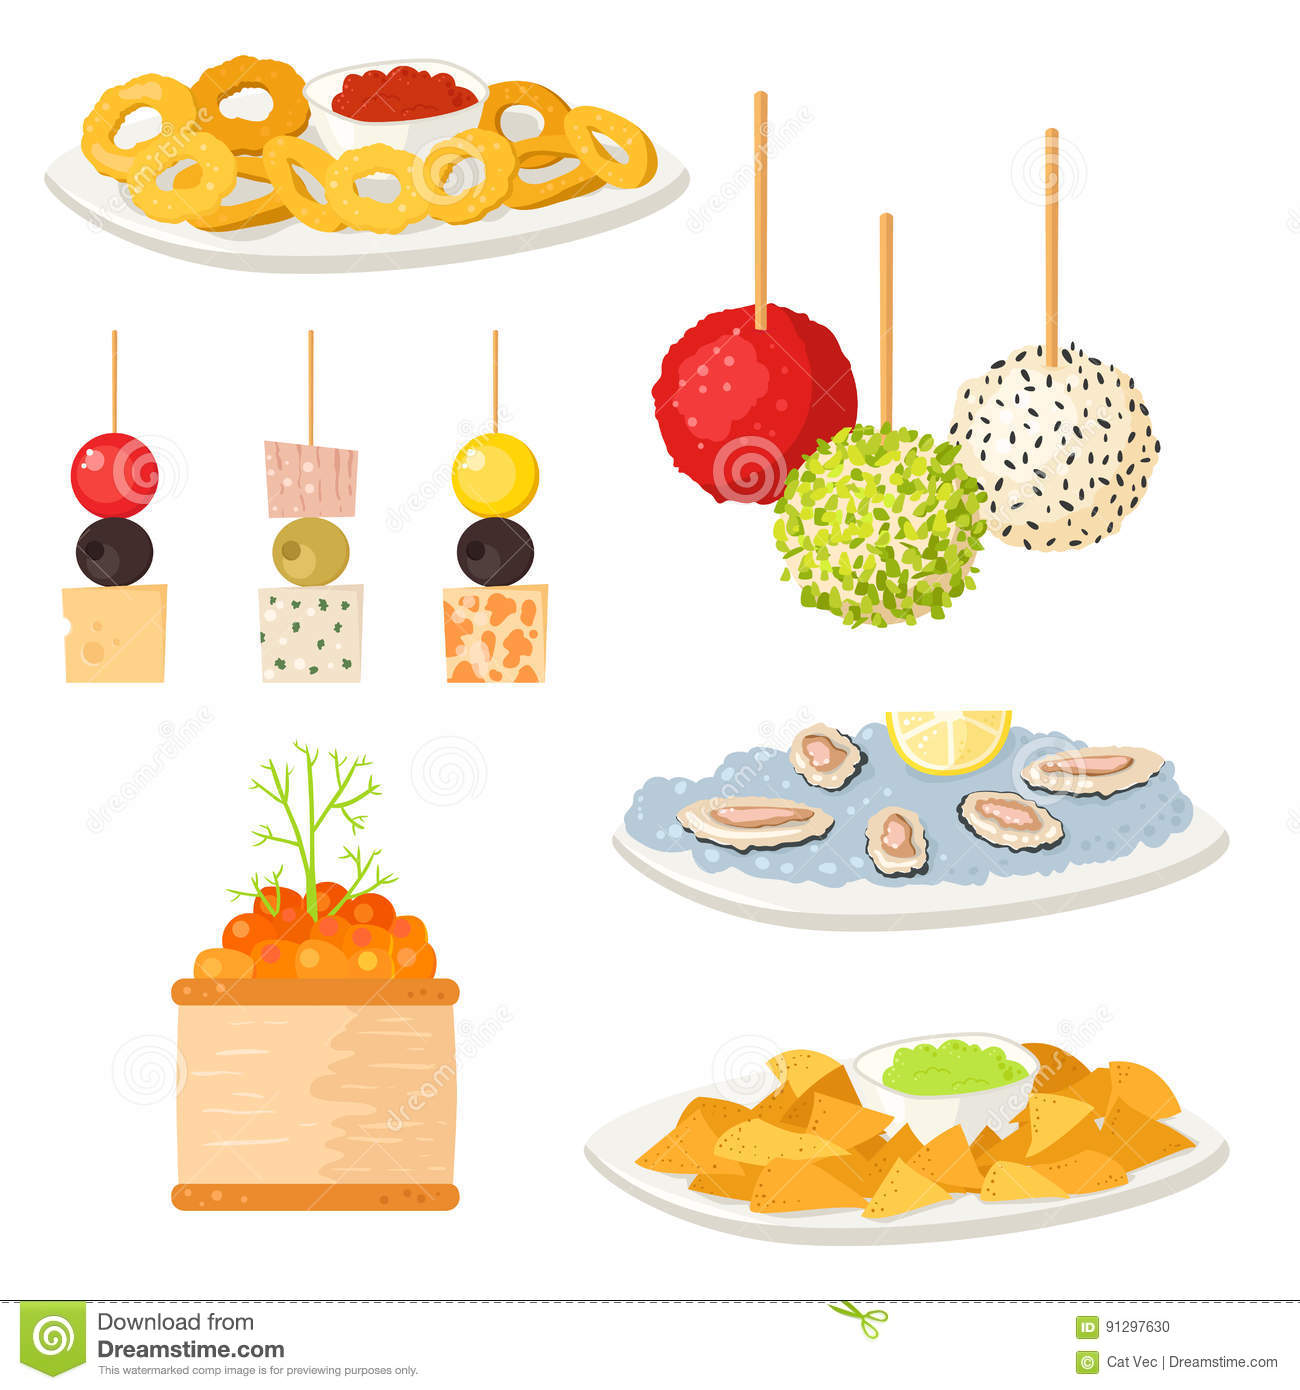 Tartlet cartoons illustrations vector stock images for Canape vector download